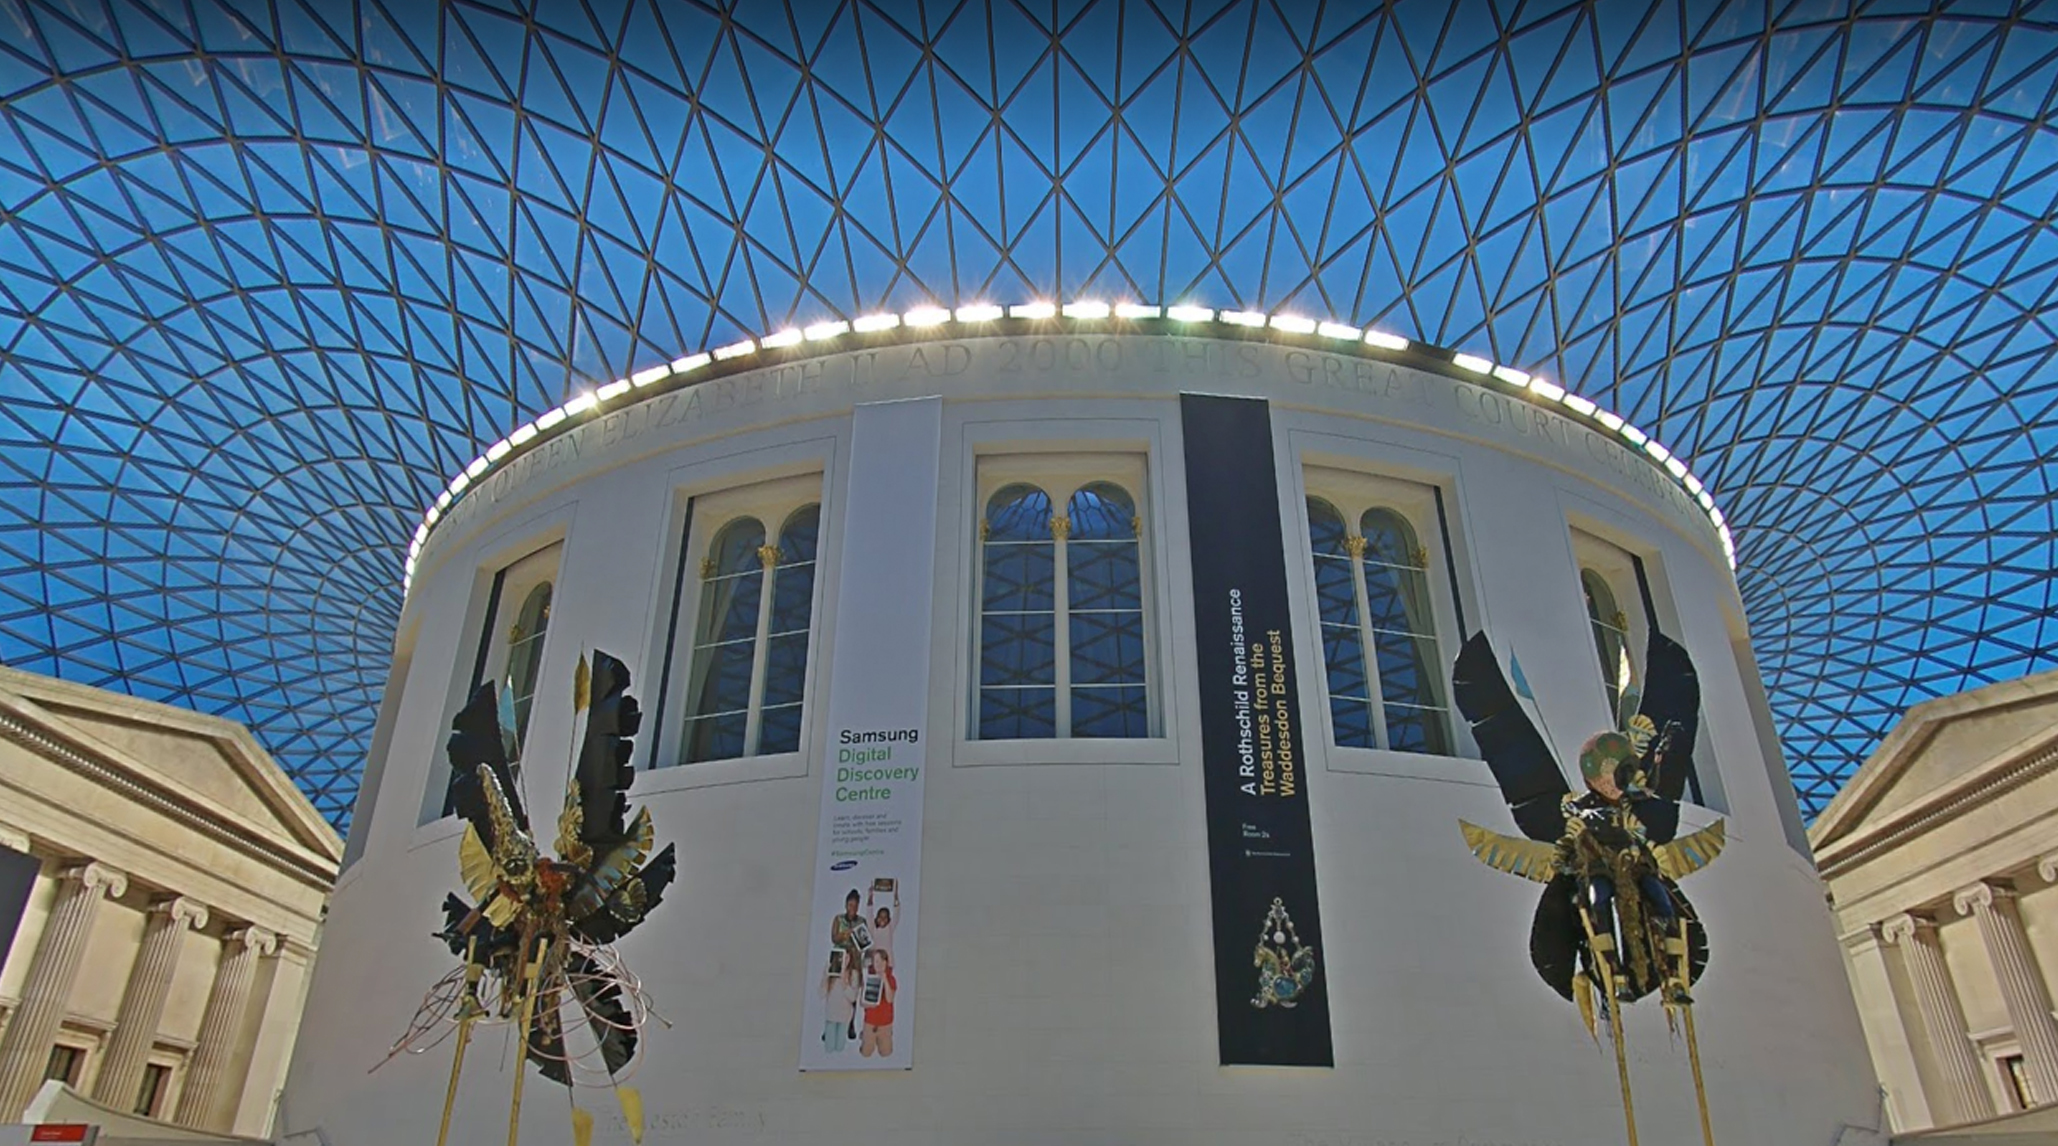 You can do virtual tours of almost every major London museum and gallery